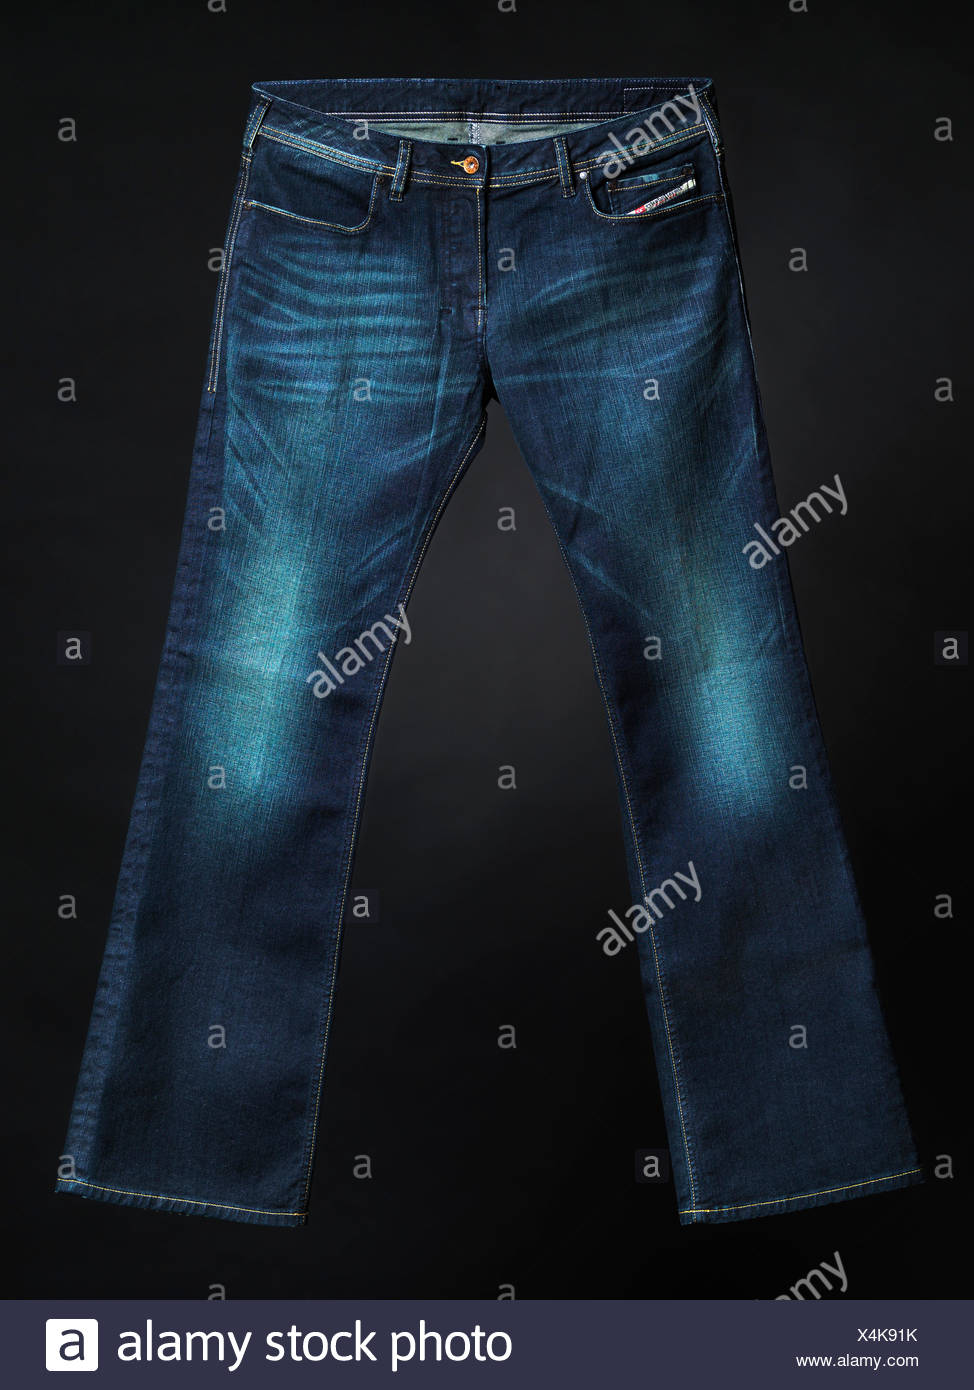 separation shoes 58bef f9703 Diesel Jeans Stock Photos & Diesel Jeans Stock Images - Alamy